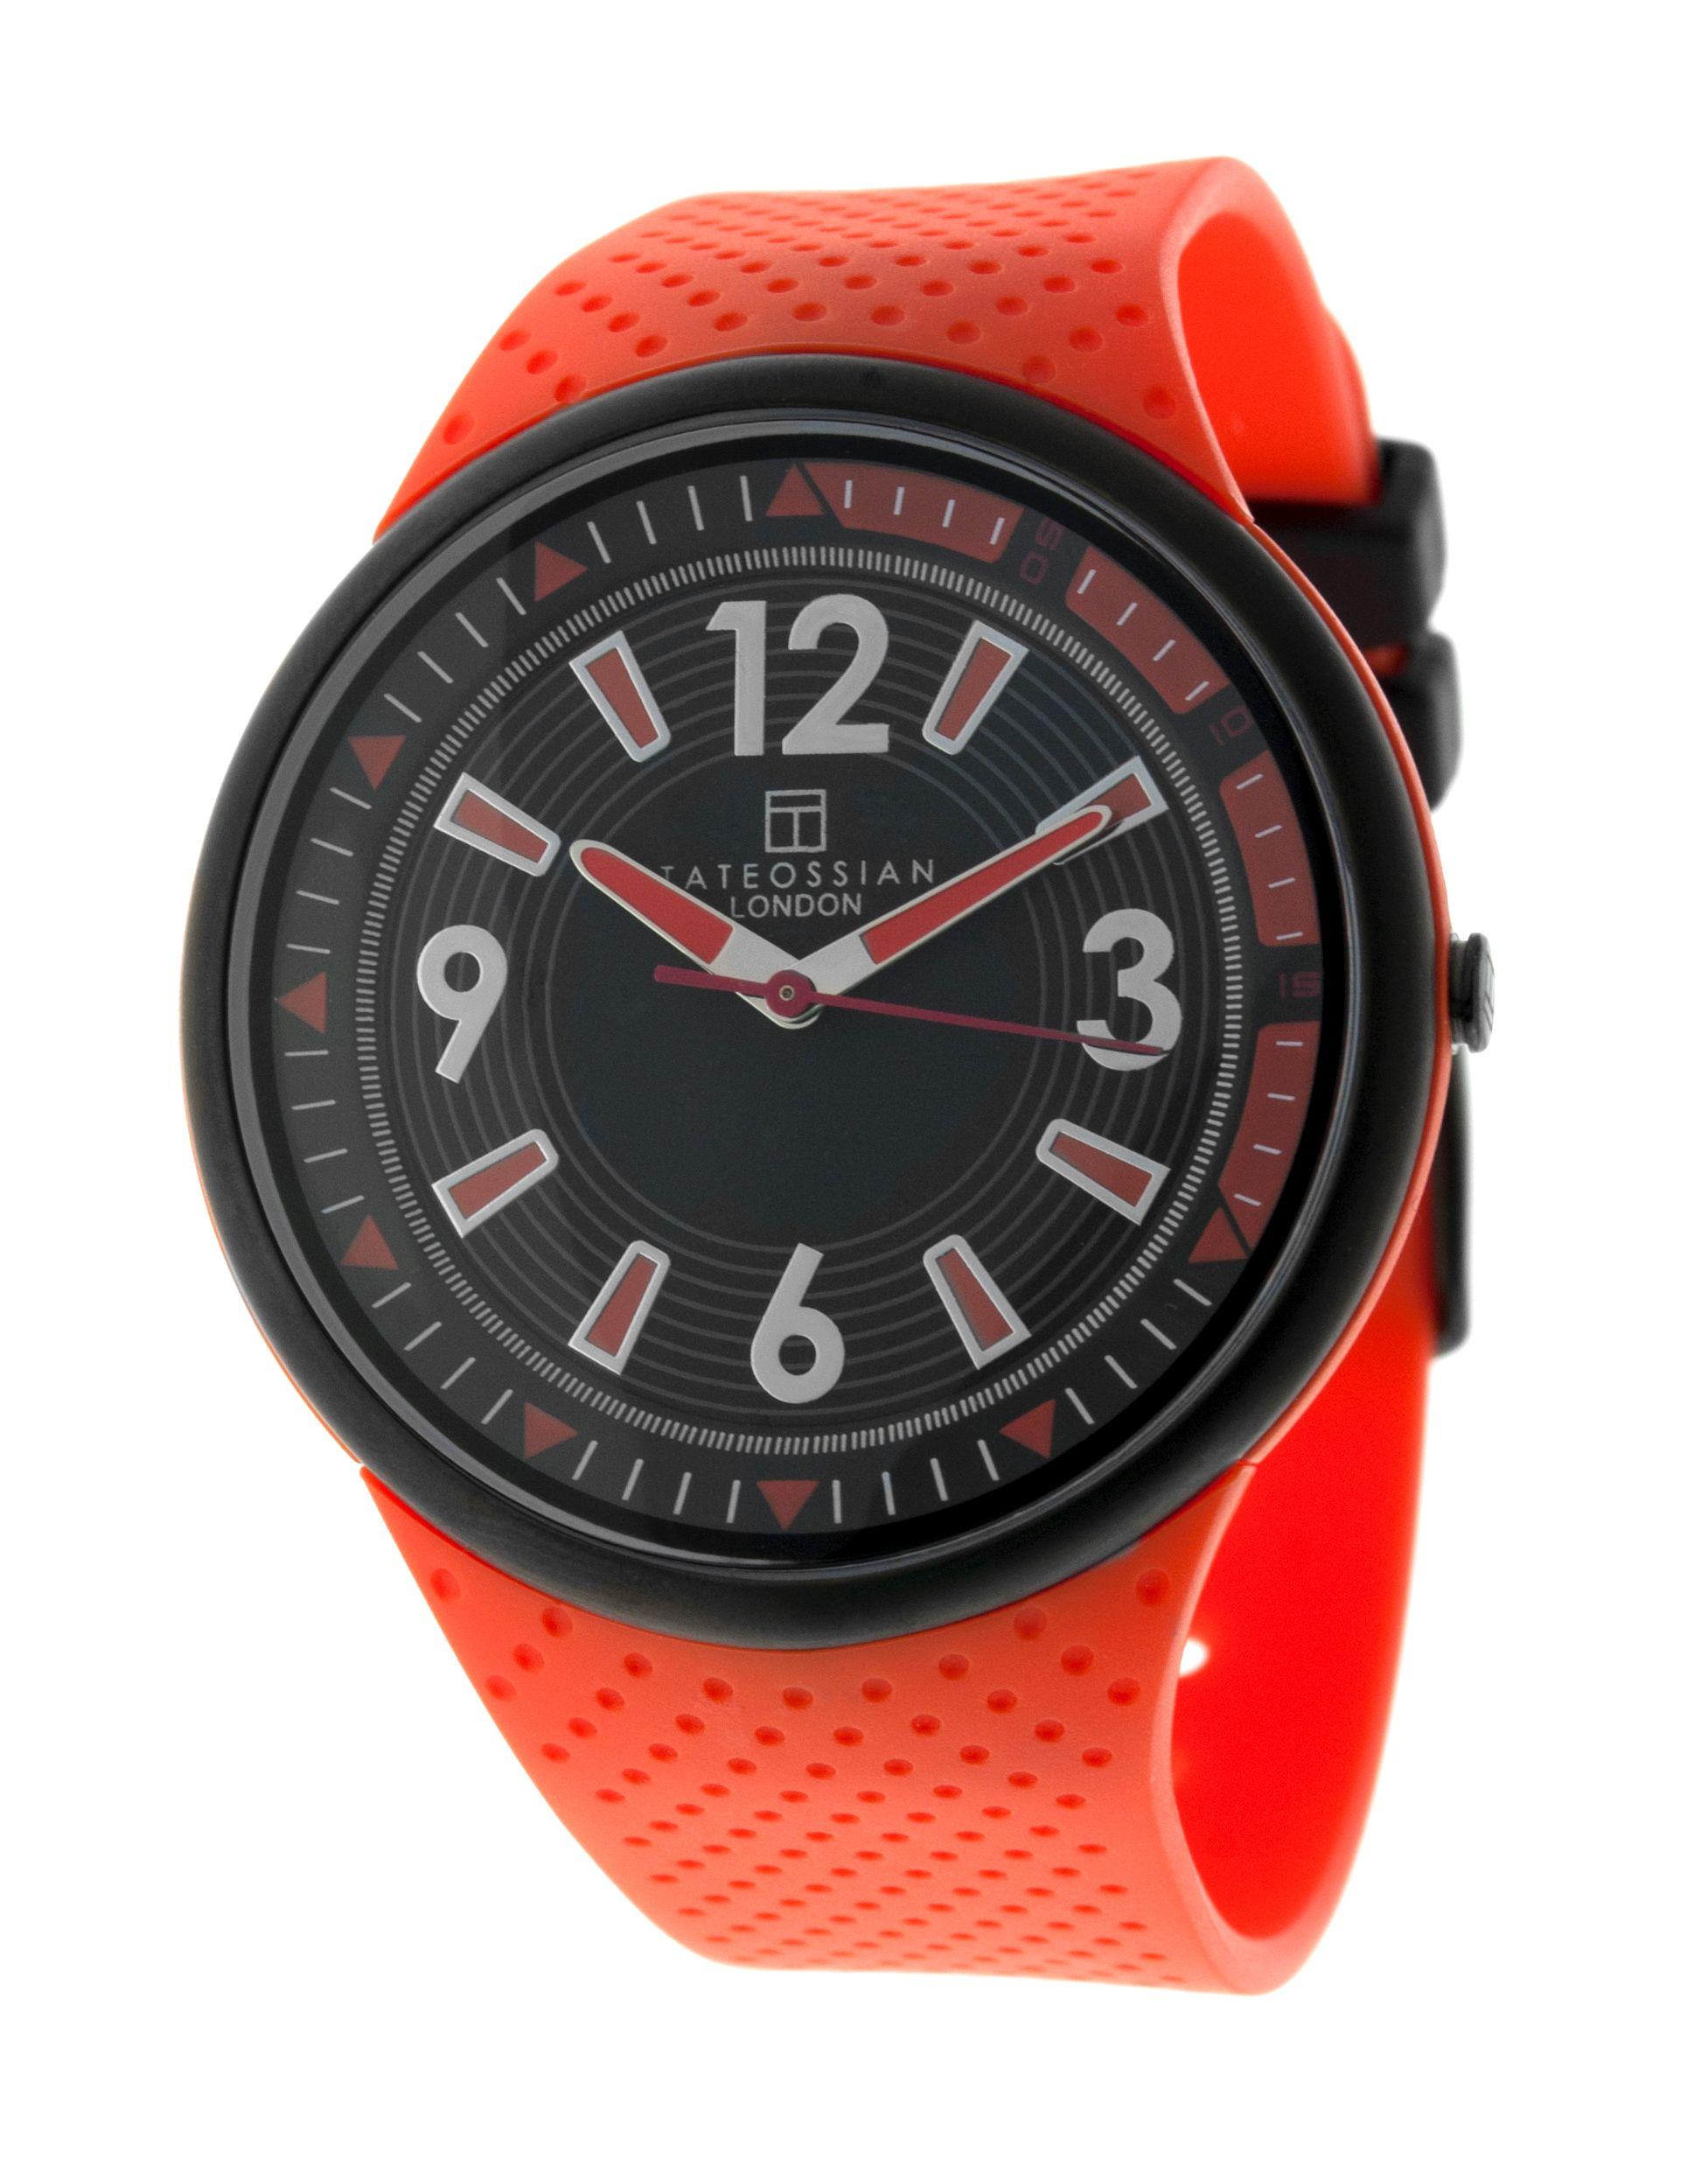 Stainl Steel  Rubber PU  Orange  2035 Japan movement 10ATM   Racing Time